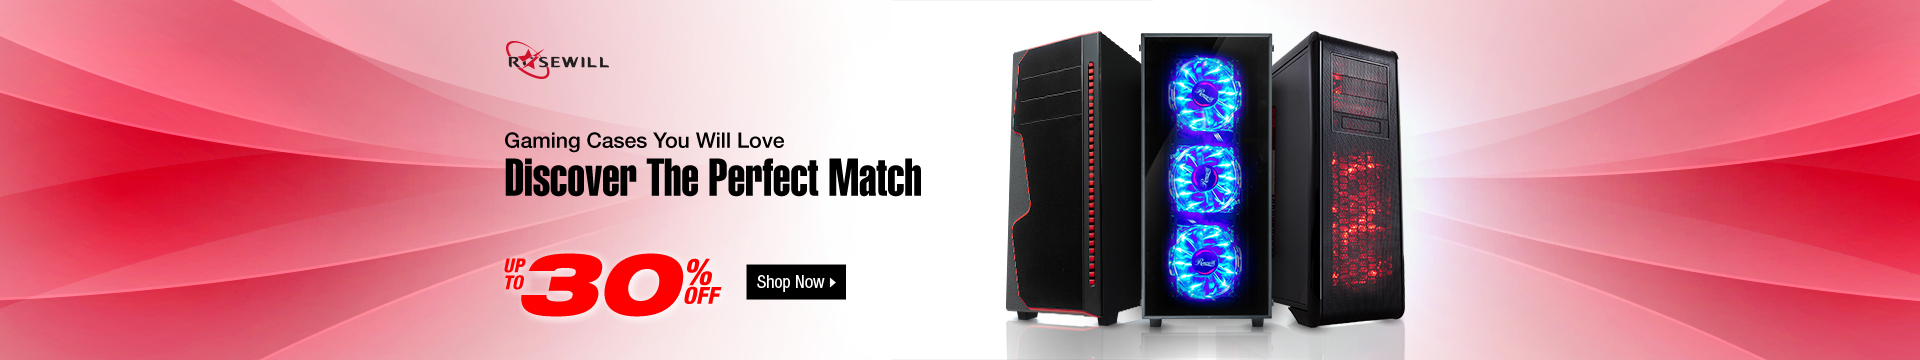 Discover the Perfect Match